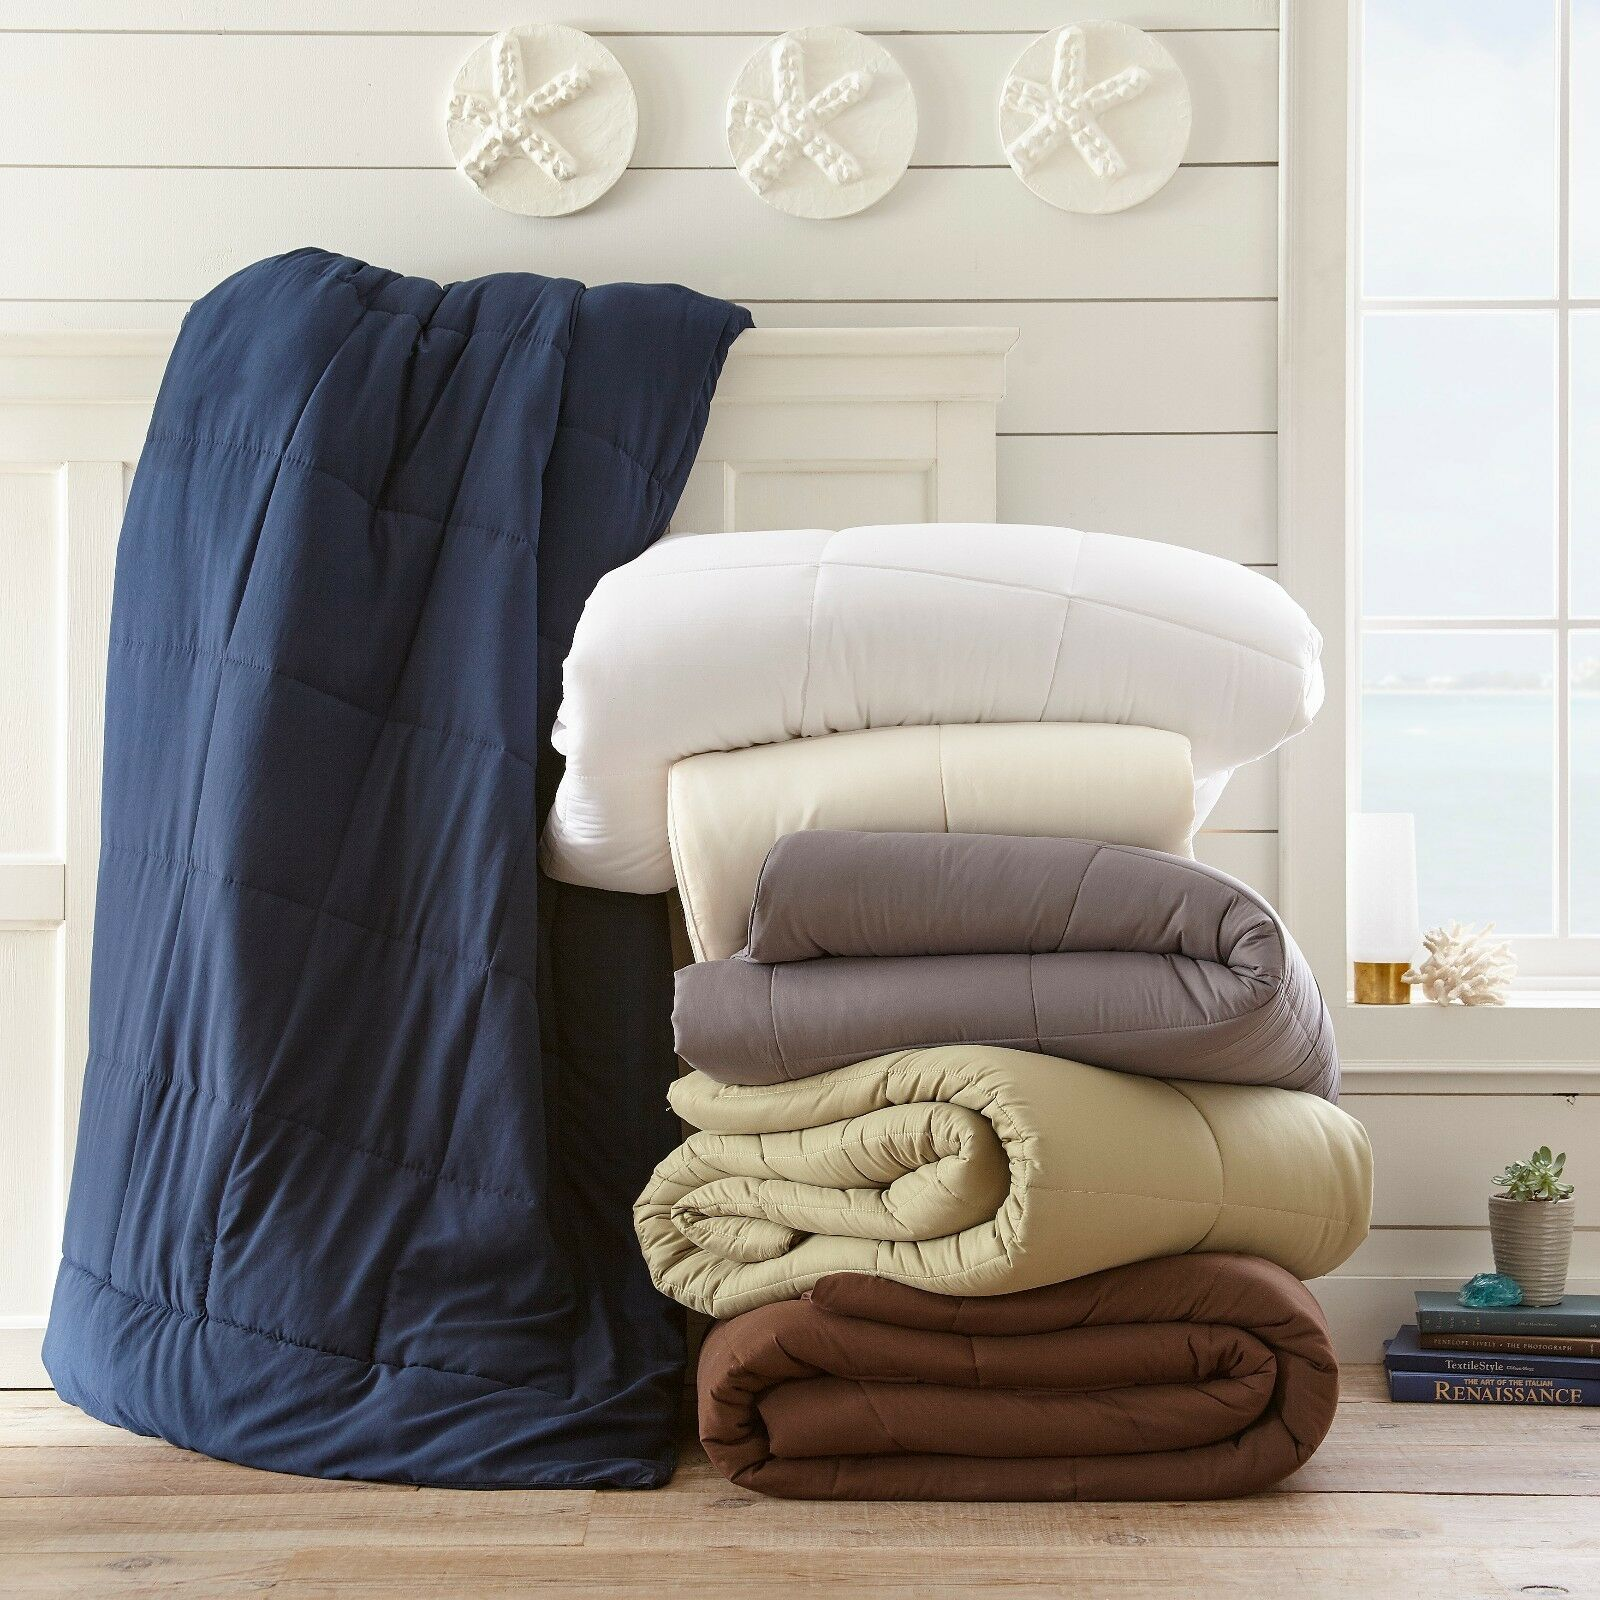 simply-soft-lightweight-summer-down-alternative-comforter-6-colors